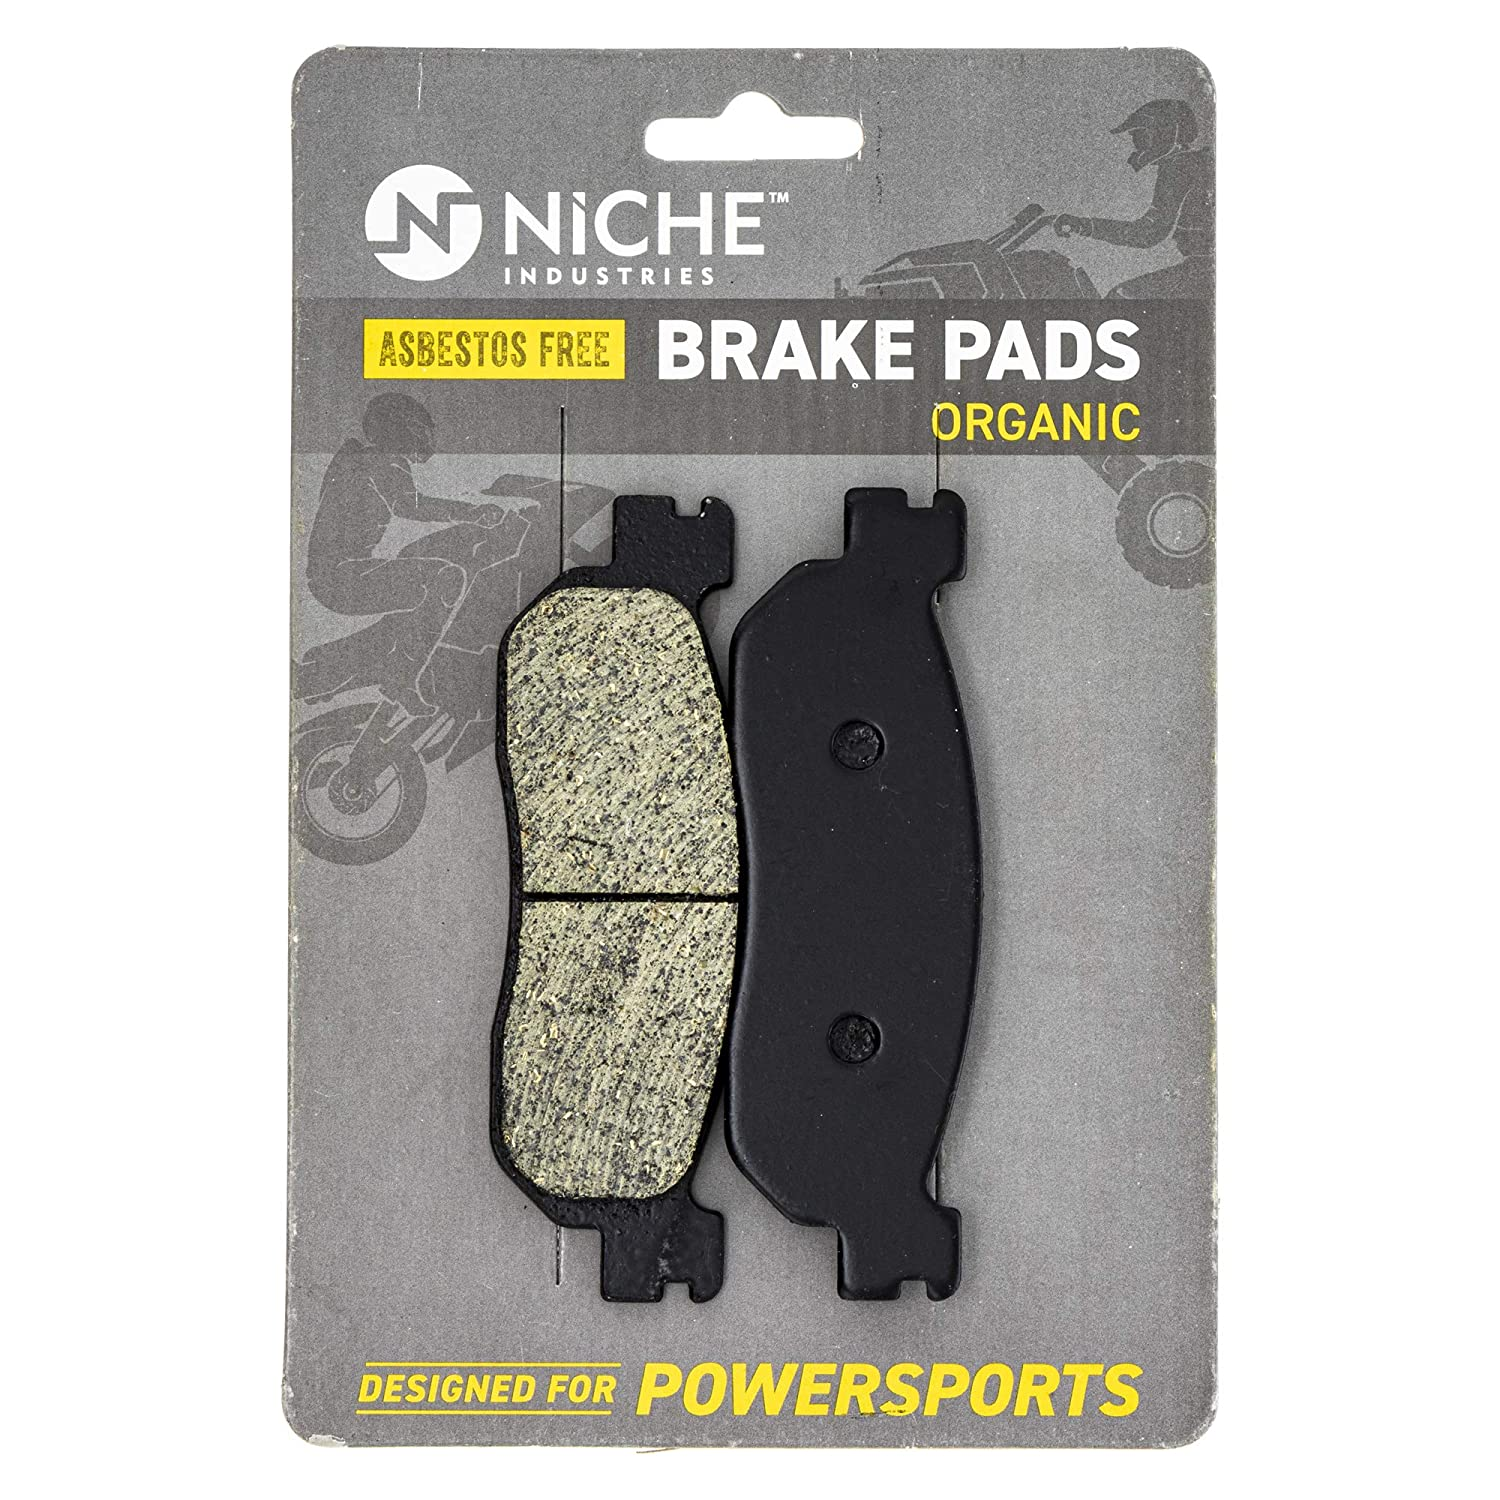 NICHE Brake Pad with Show Set For Yamaha TW200 XT225 3C5-25805-00-00 4KN-W253E-11-00 Complete Organic